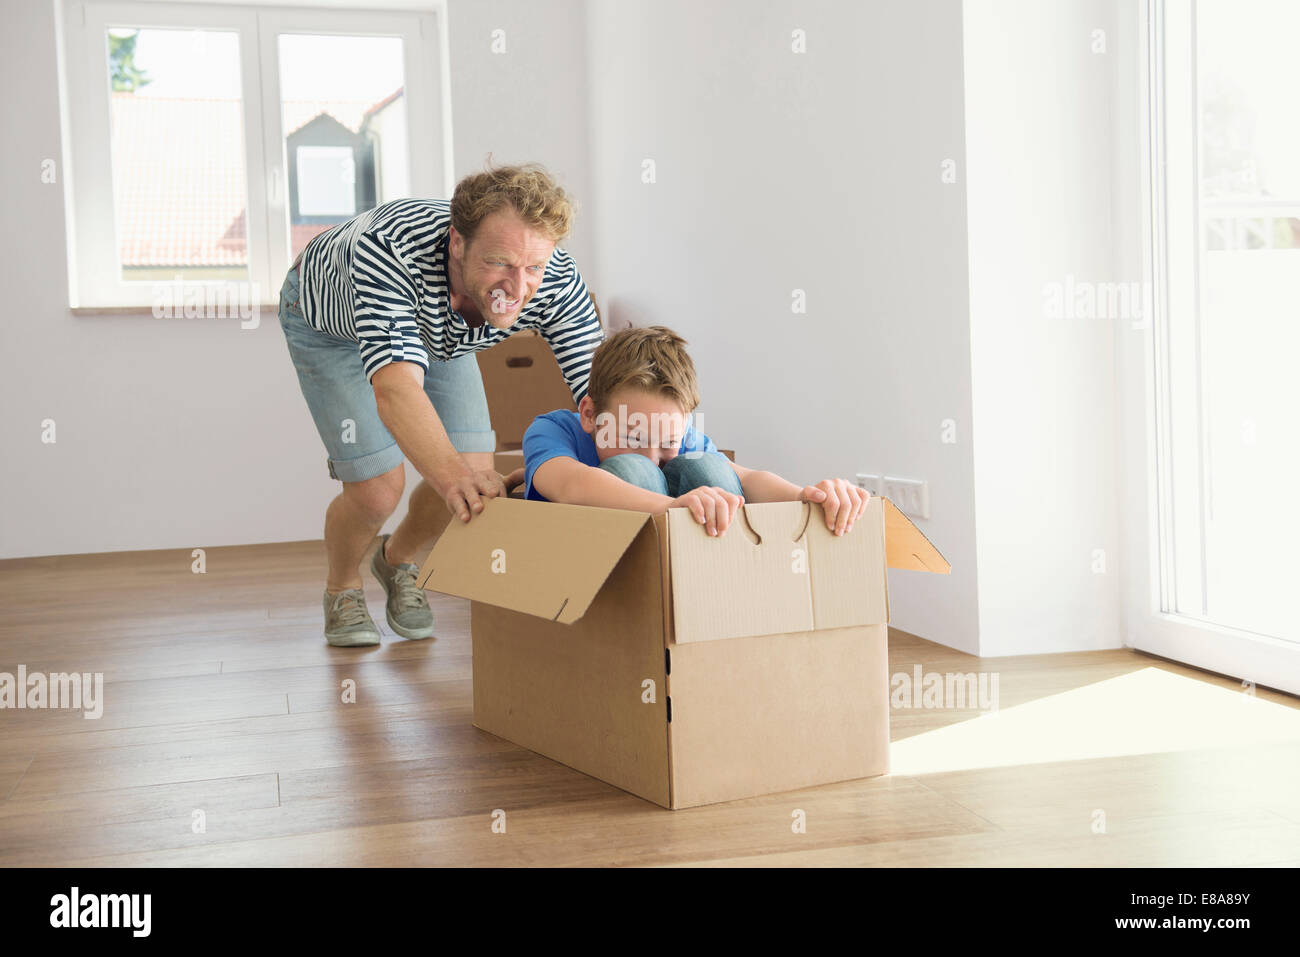 Father son new apartment playing cardboard box - Stock Image